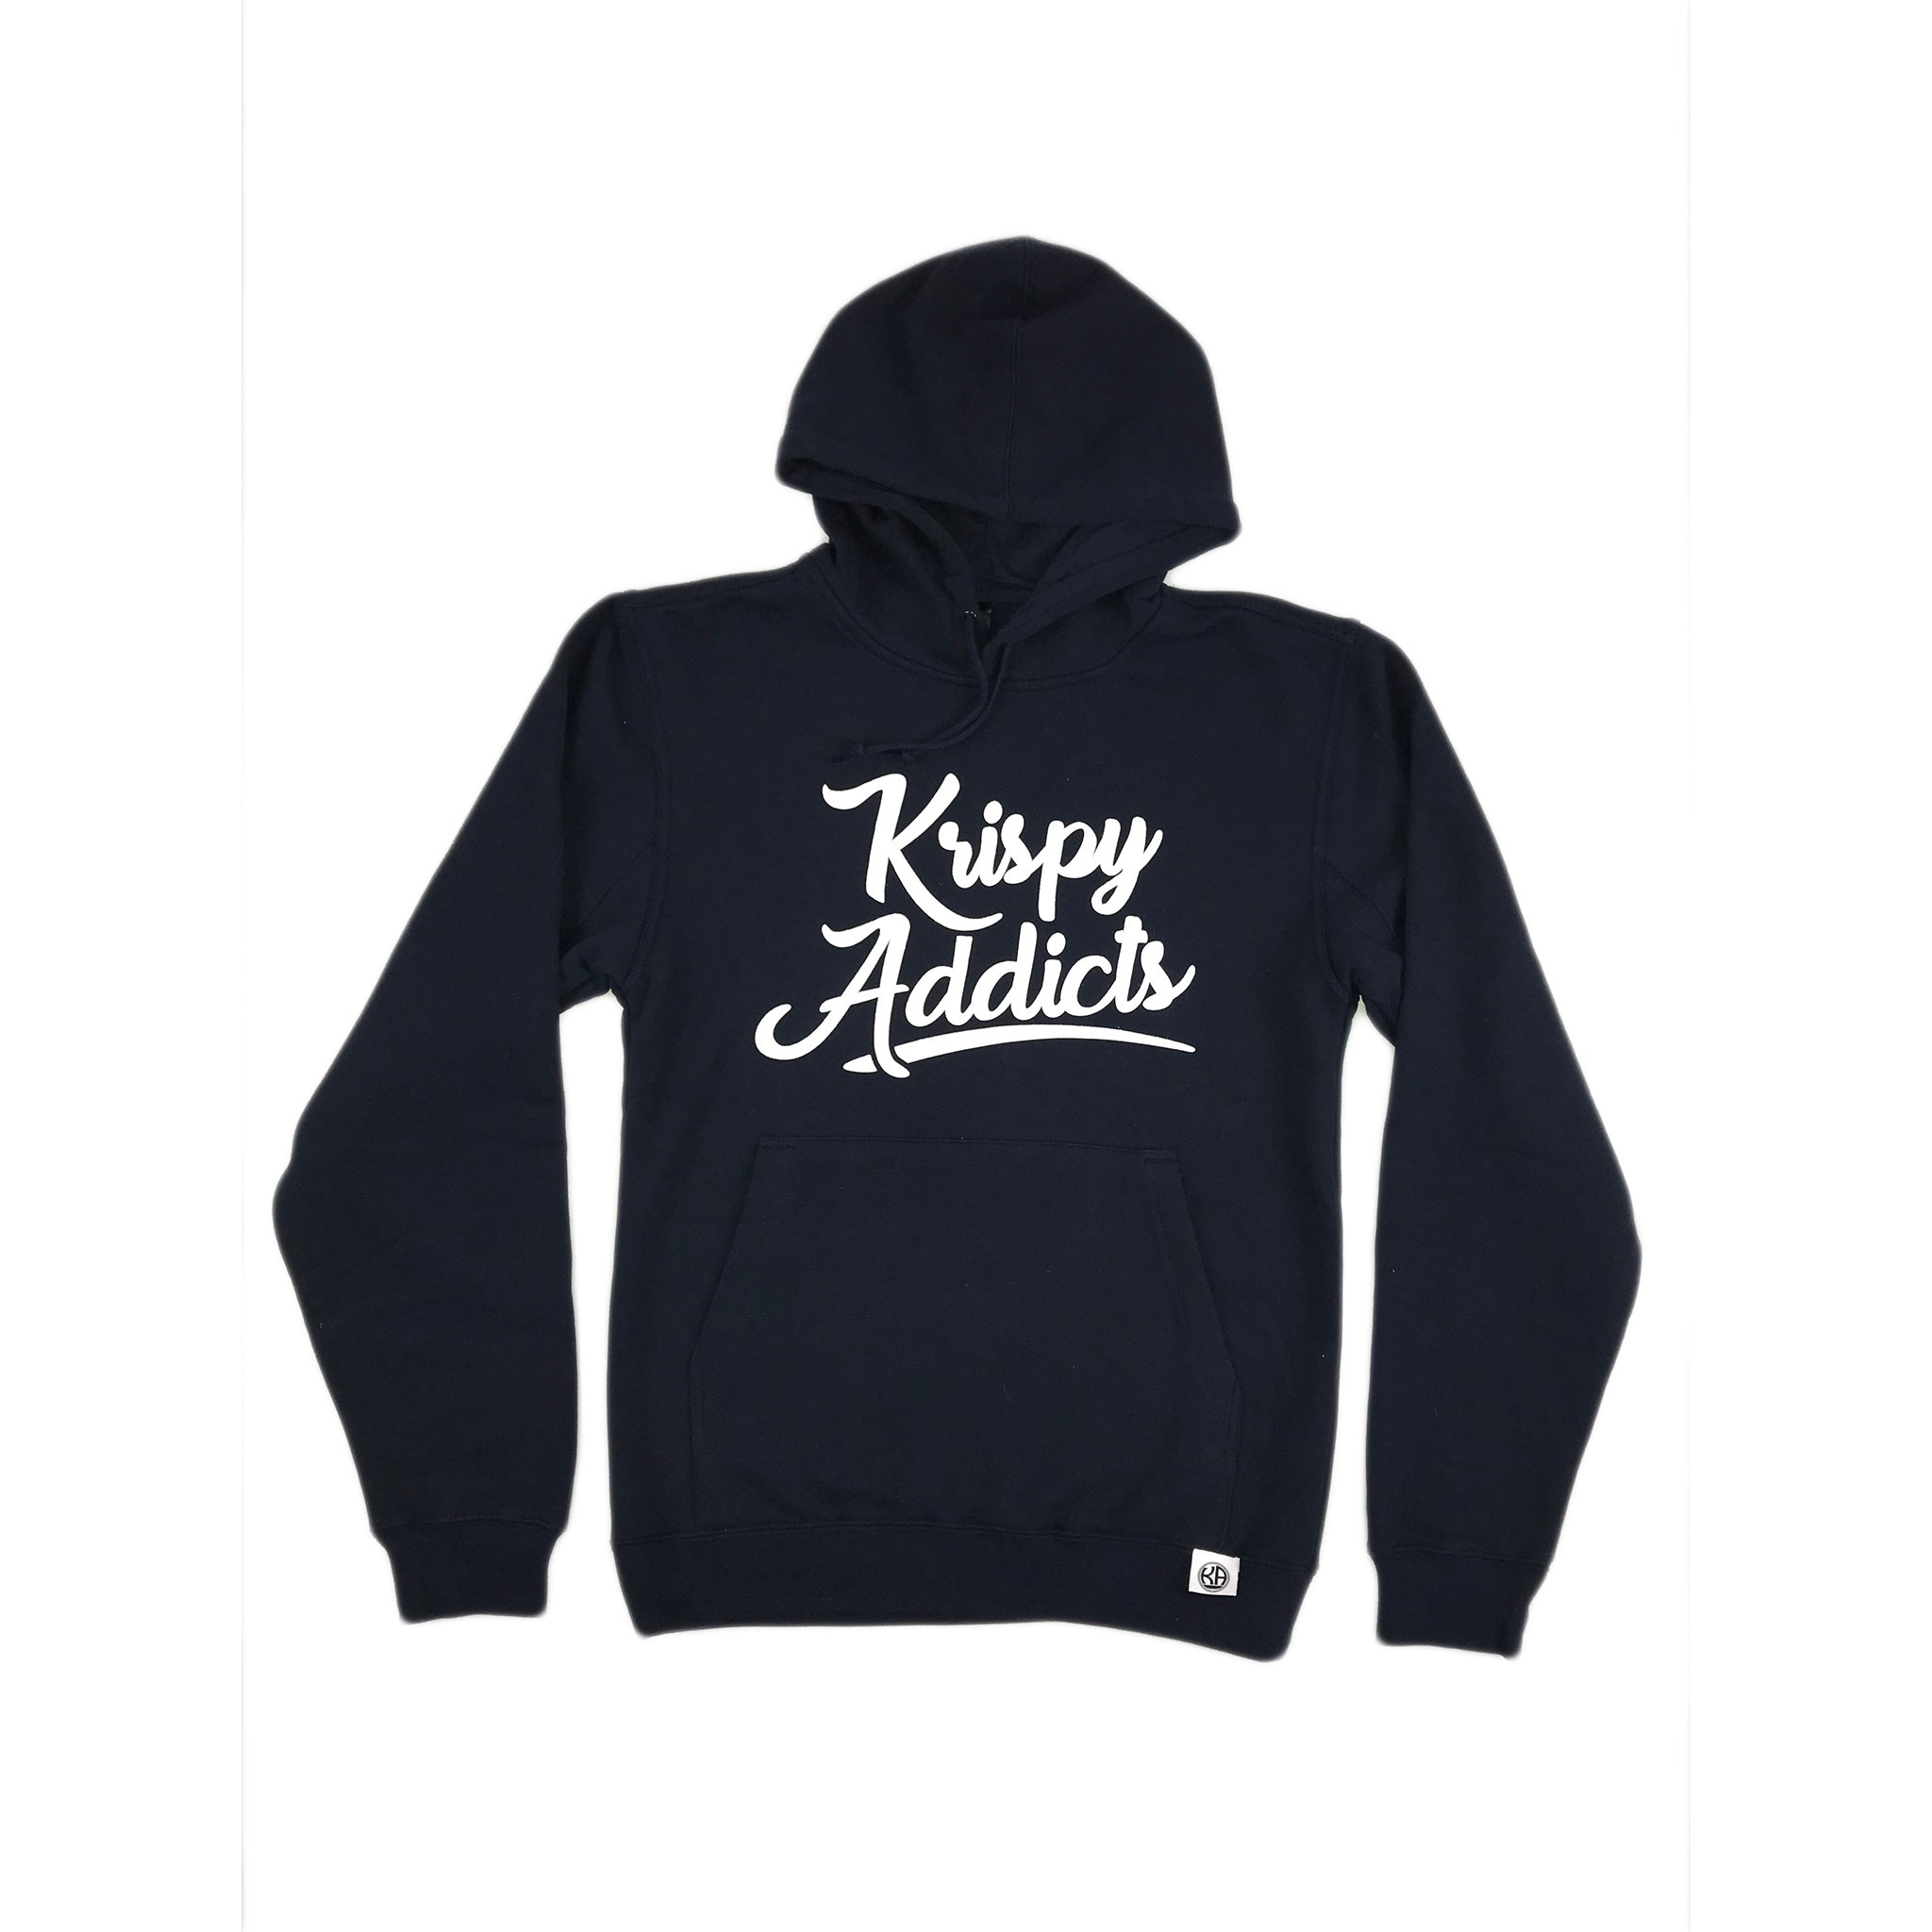 Krispy Addicts - Hoodie (navy/white)